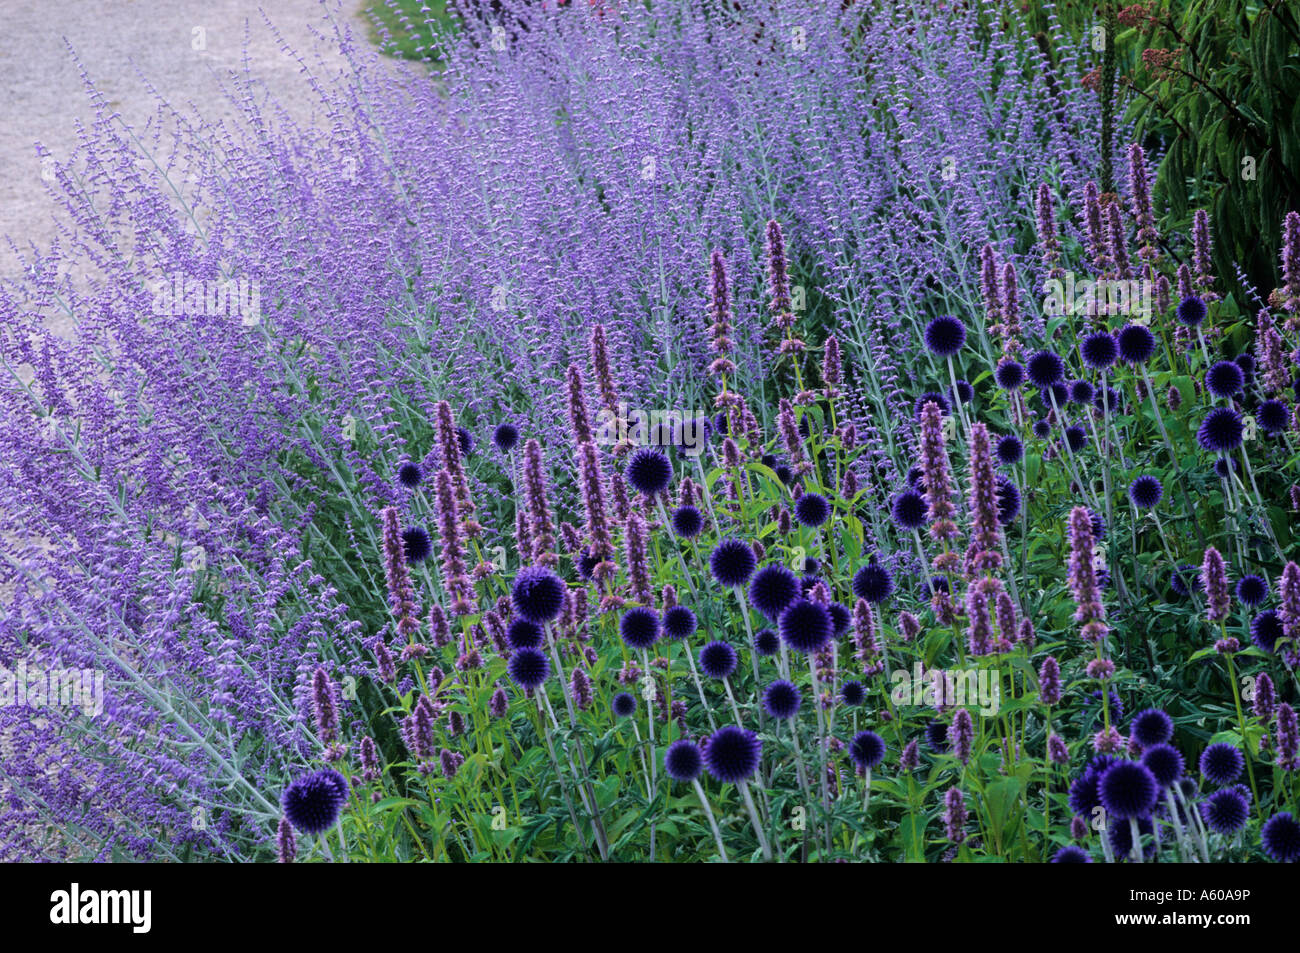 echinops veitch s blue perovskia blue spire stock photo. Black Bedroom Furniture Sets. Home Design Ideas